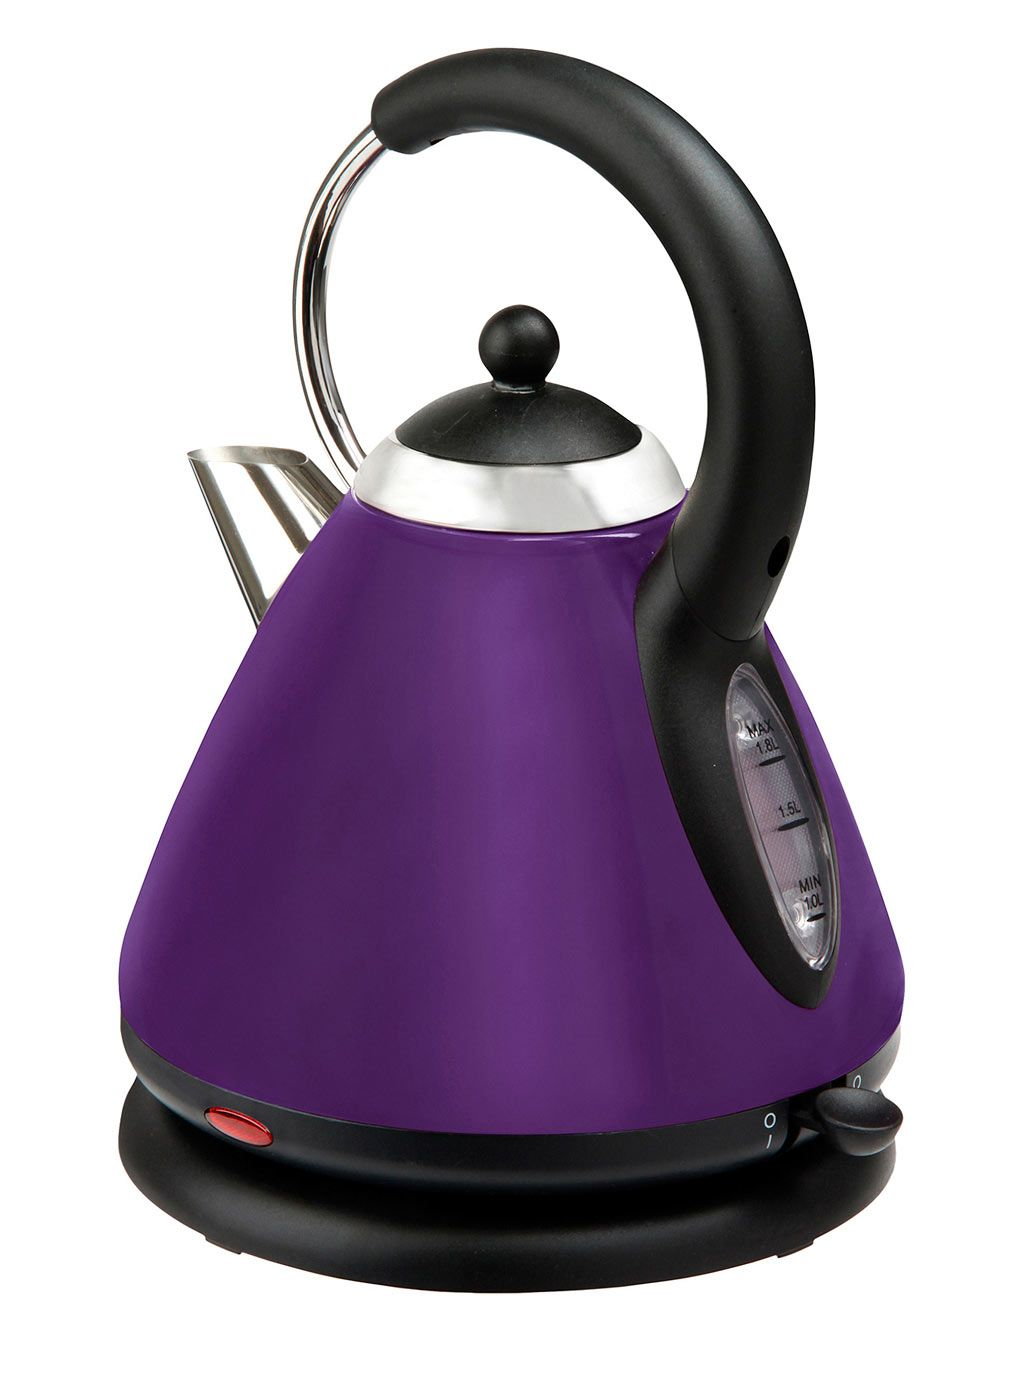 ♡❦✤Purple✤❦♡ Now This Really Speaks To Mei Love It Alluring Purple Kitchen Appliances Design Decoration